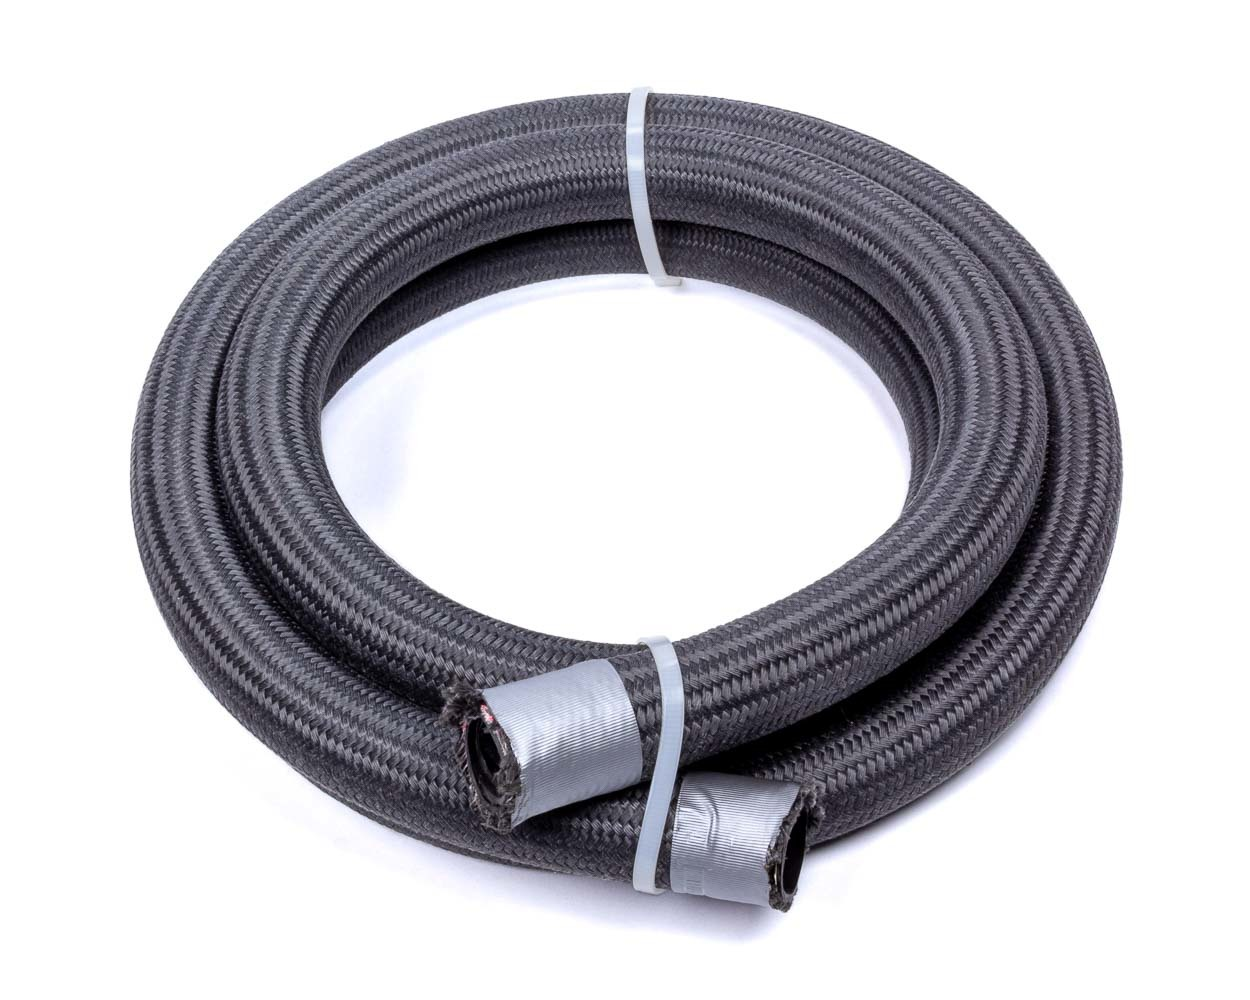 Fragola 2710312 Hose, Race-Rite Pro, 12 AN, 3 ft, Braided Fire Retardant Fabric, Wire Reinforced, PTFE, Black, Each